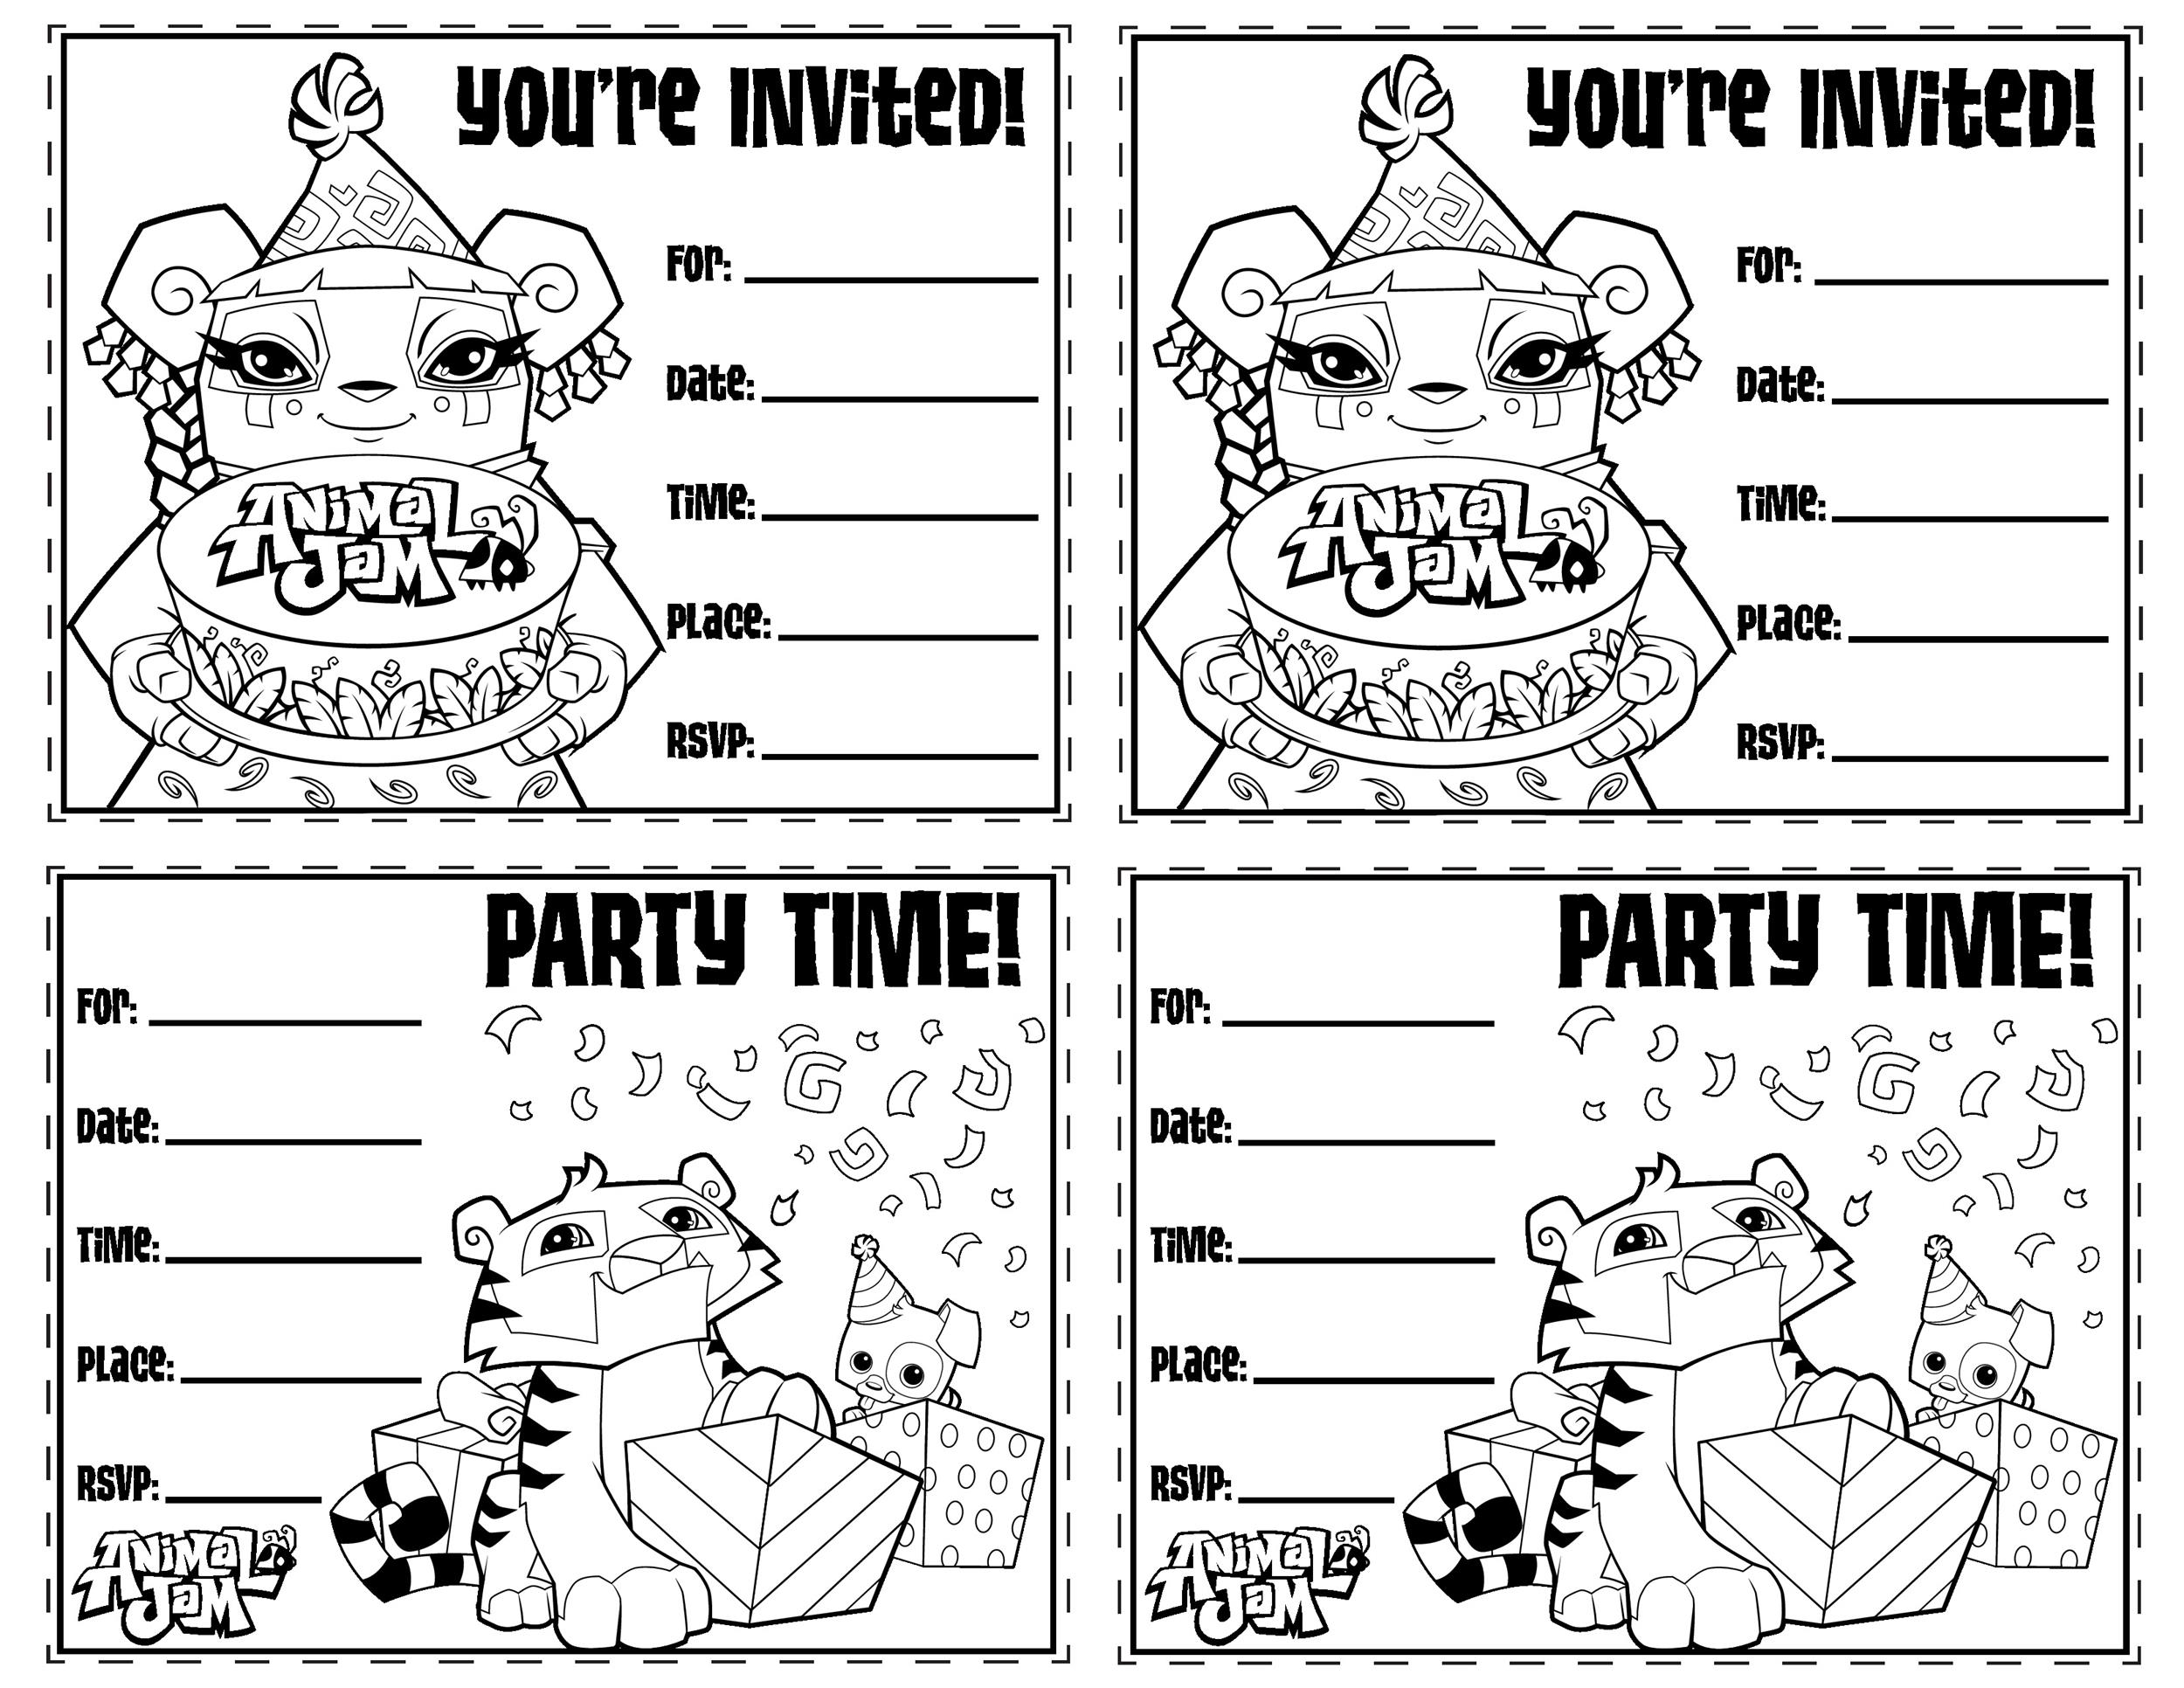 40 free birthday party invitation templates template lab printable birthday invitation template 02 filmwisefo Images